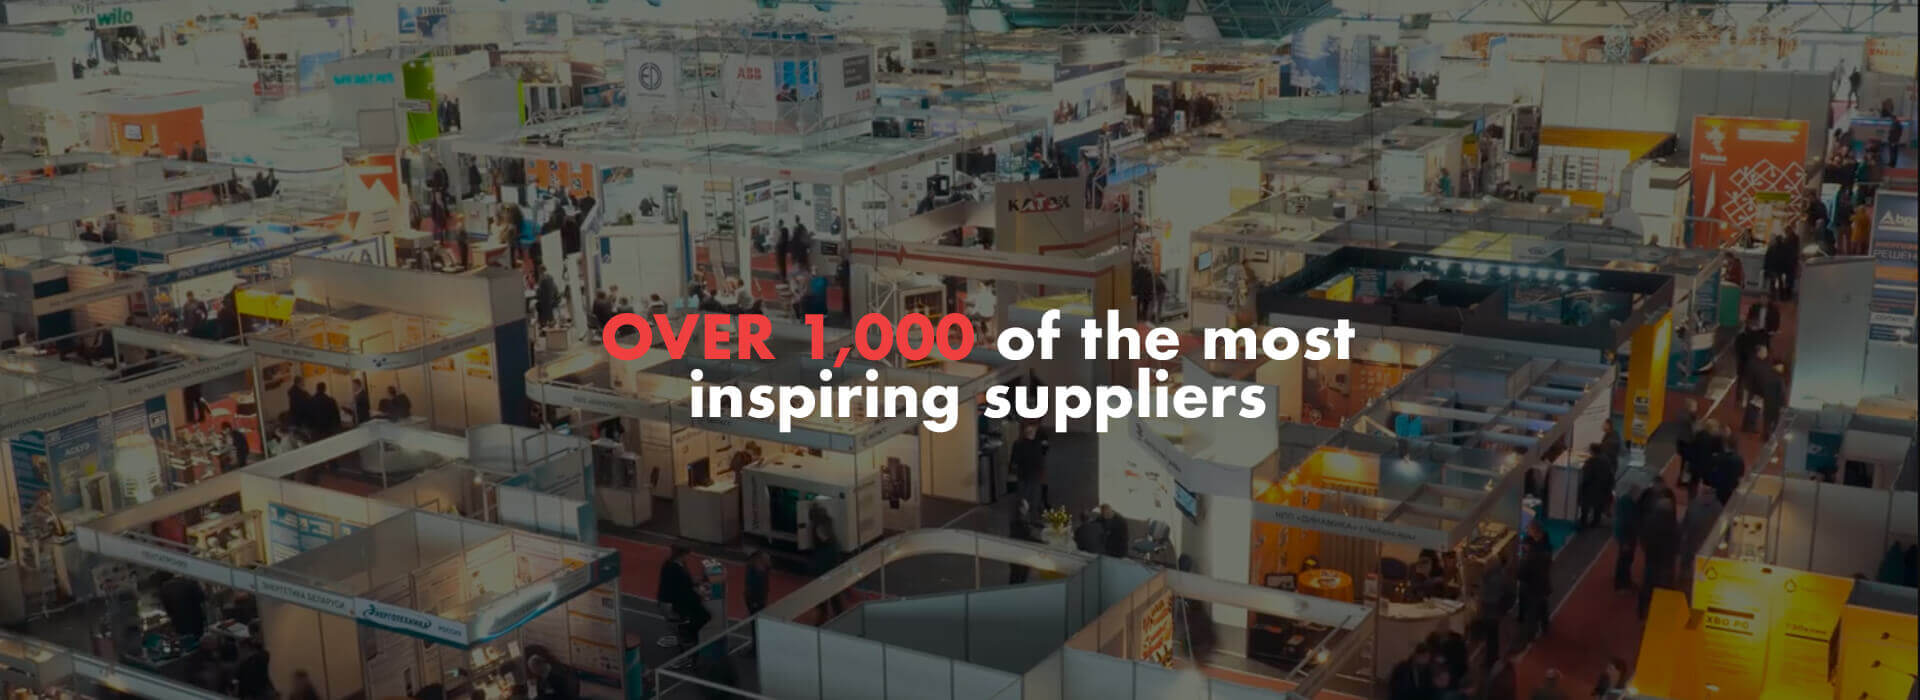 In the Farm Business Innovation Show will take part over 1,000 of the most inspiring suppliers.